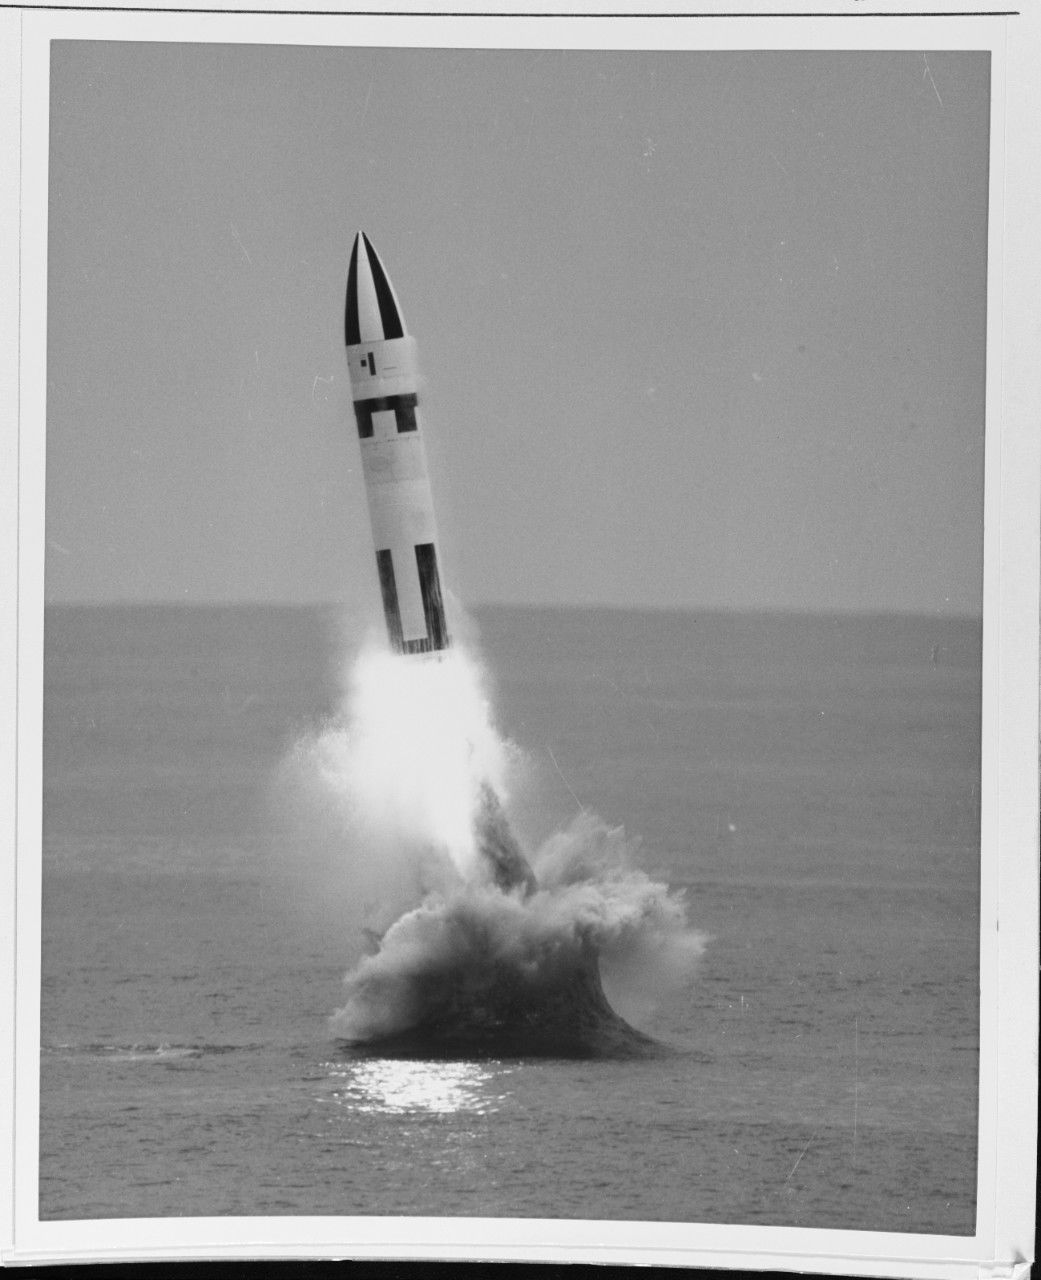 Early Dahlgren Roles in the Submarine Launched Ballistic Missile System Development - Polaris Missle